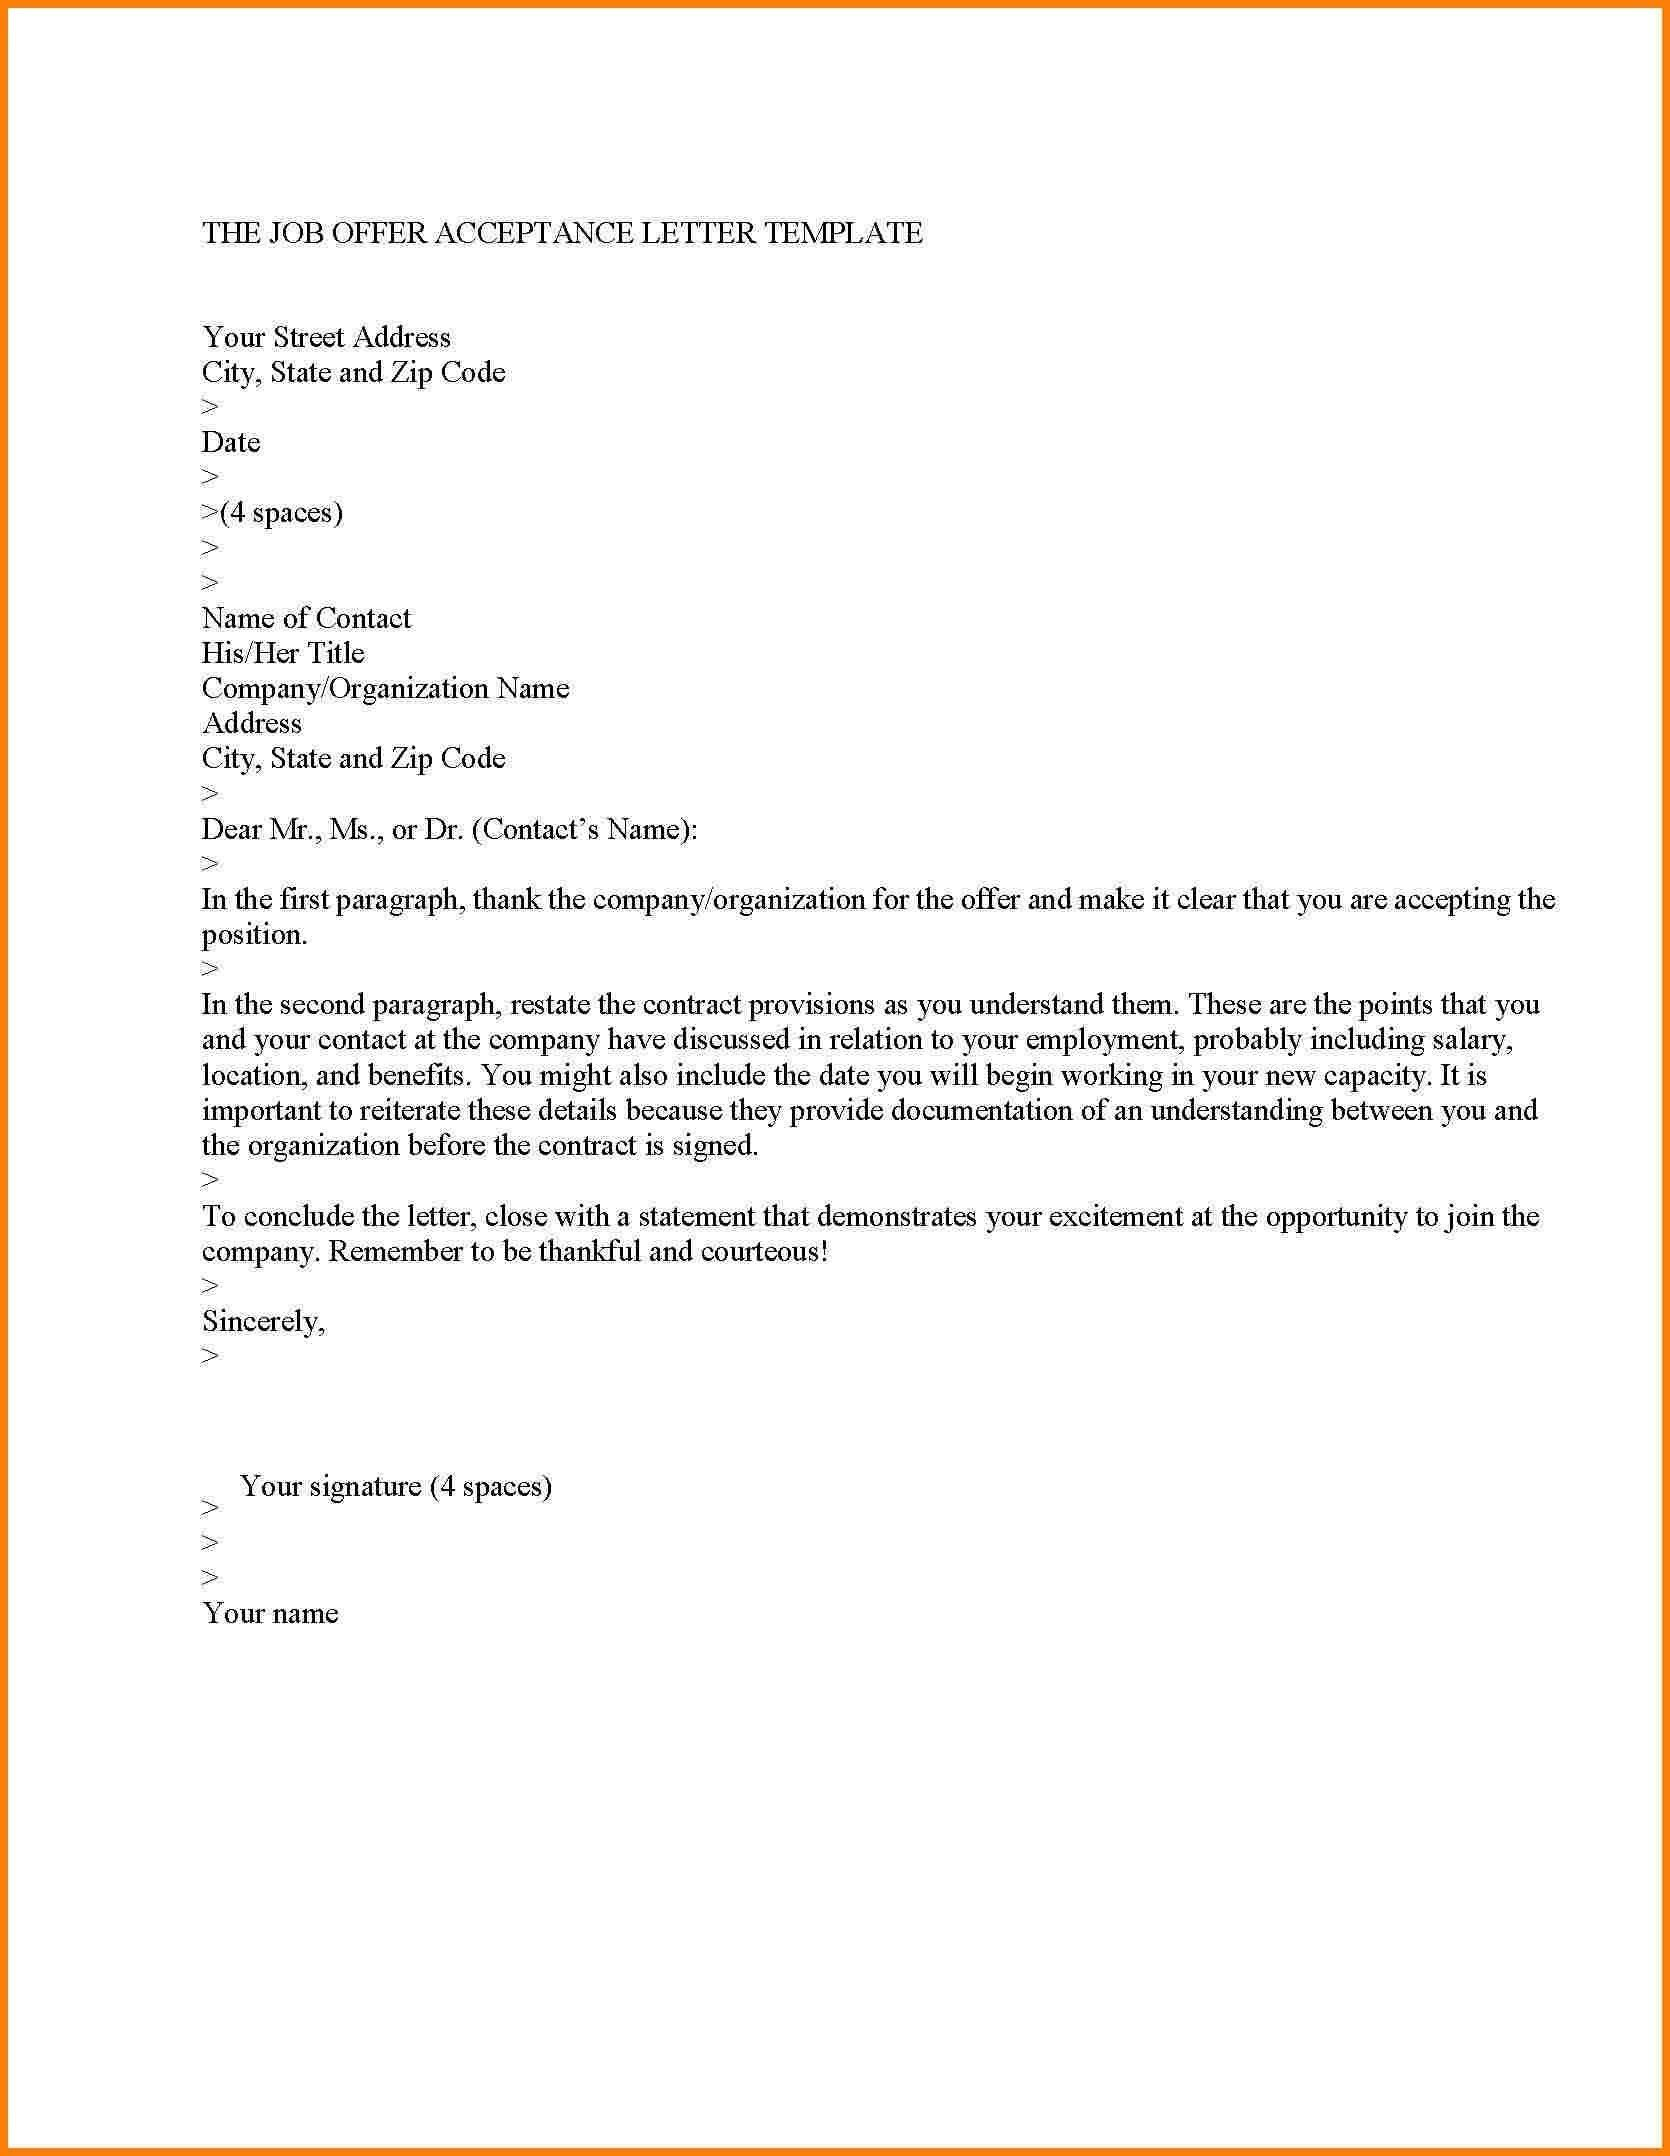 New Job Acceptance Letter Template Letter format sample